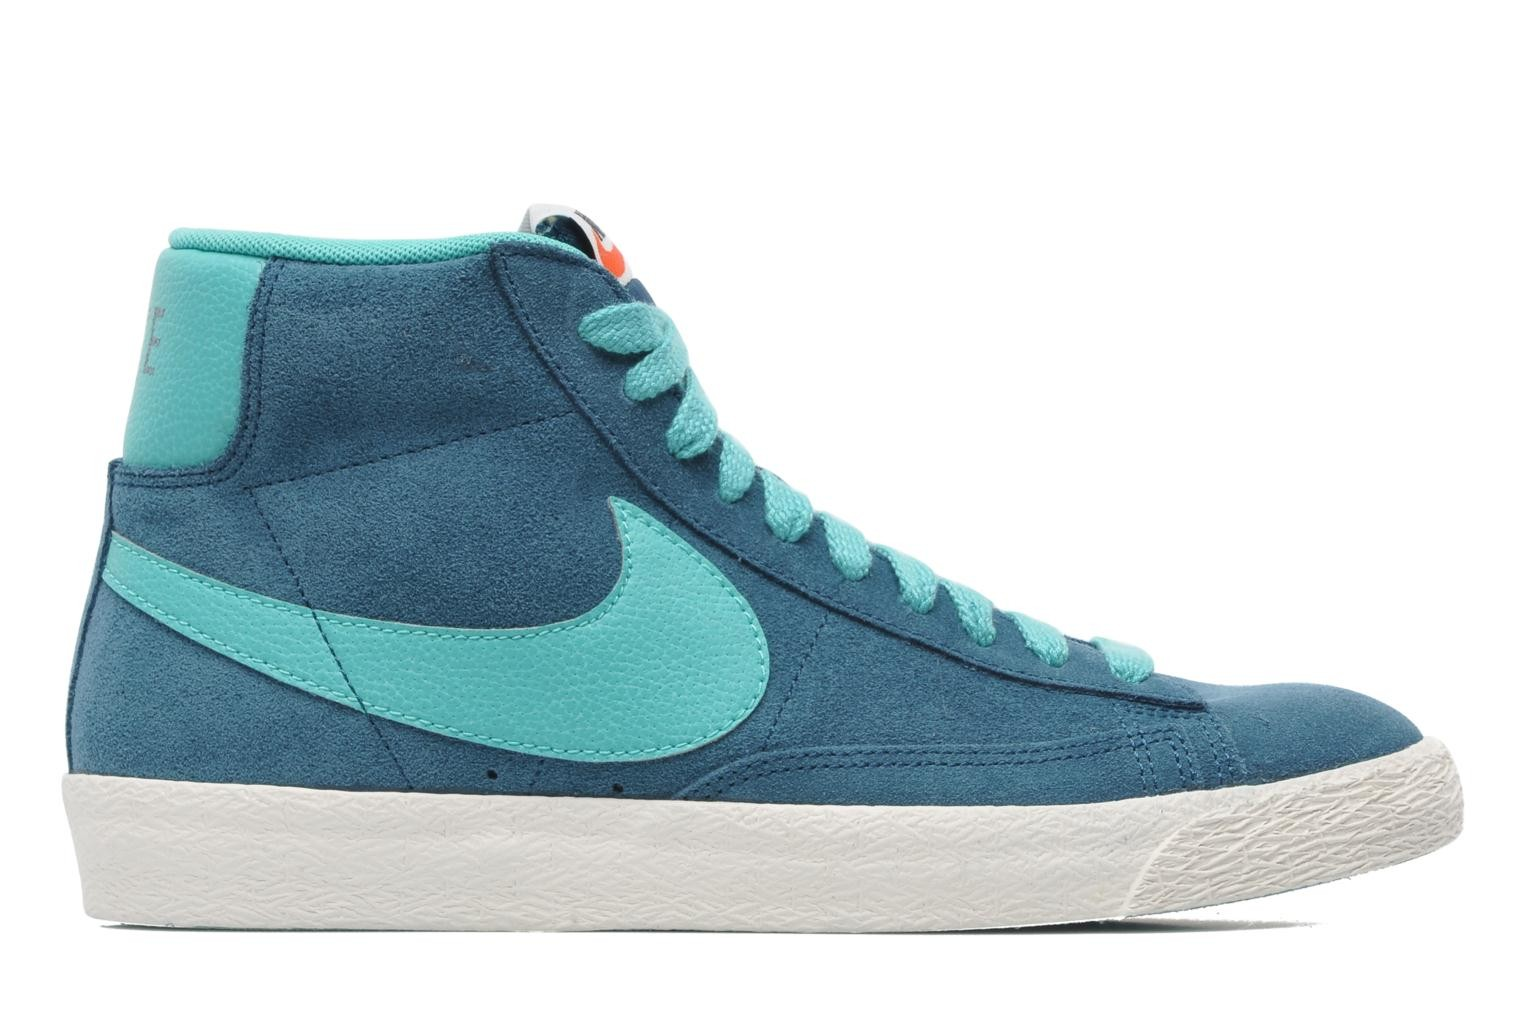 Nike Blazer Mid Prm Vntg Space Blue Hyper Jade Sail Men's Shoe